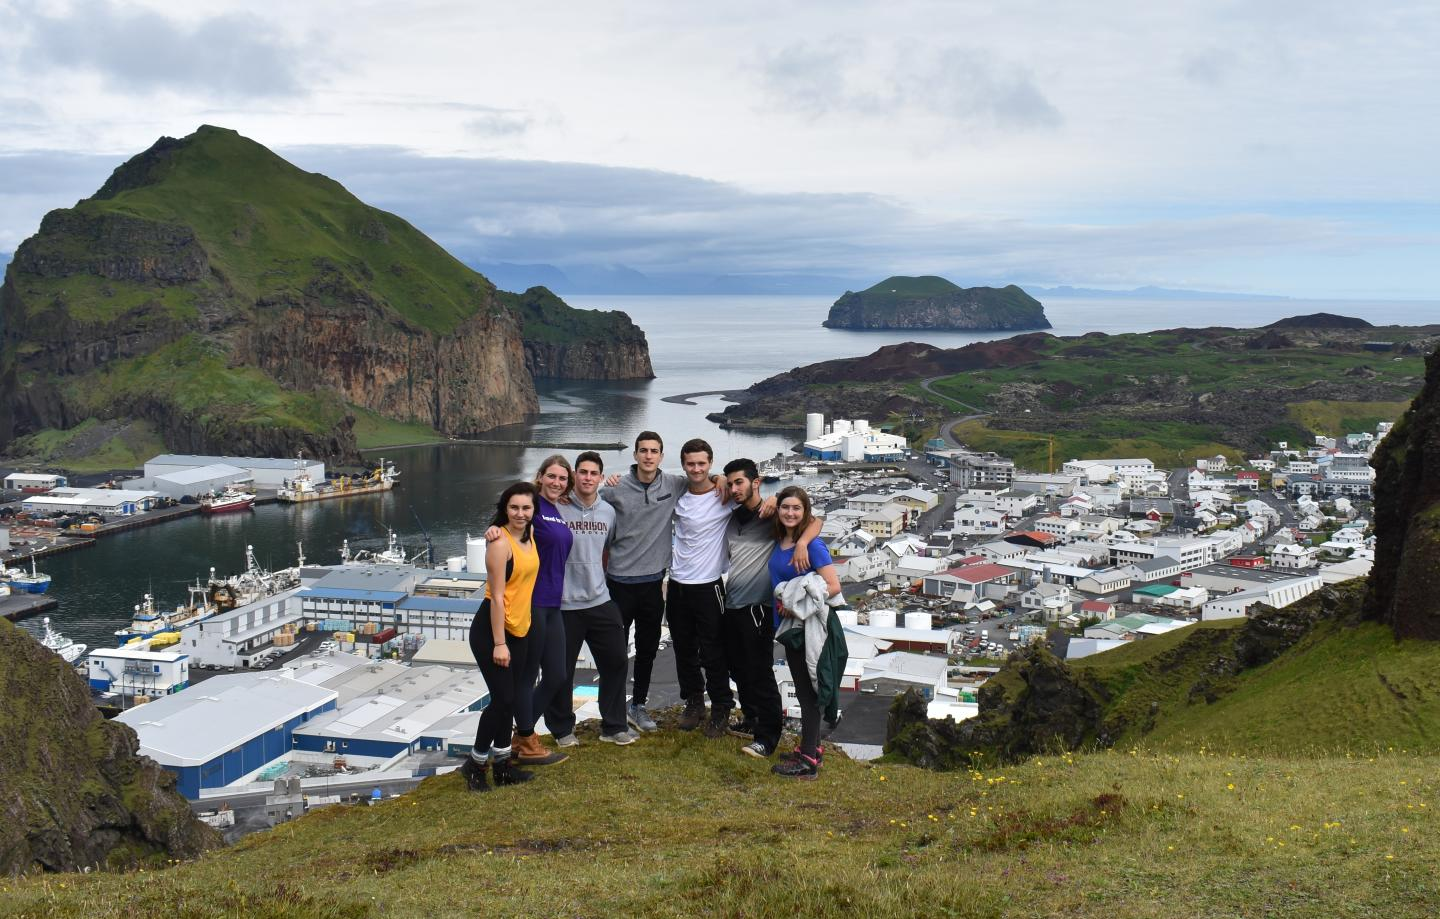 High school students enjoy the views in Iceland during their summer teen tour